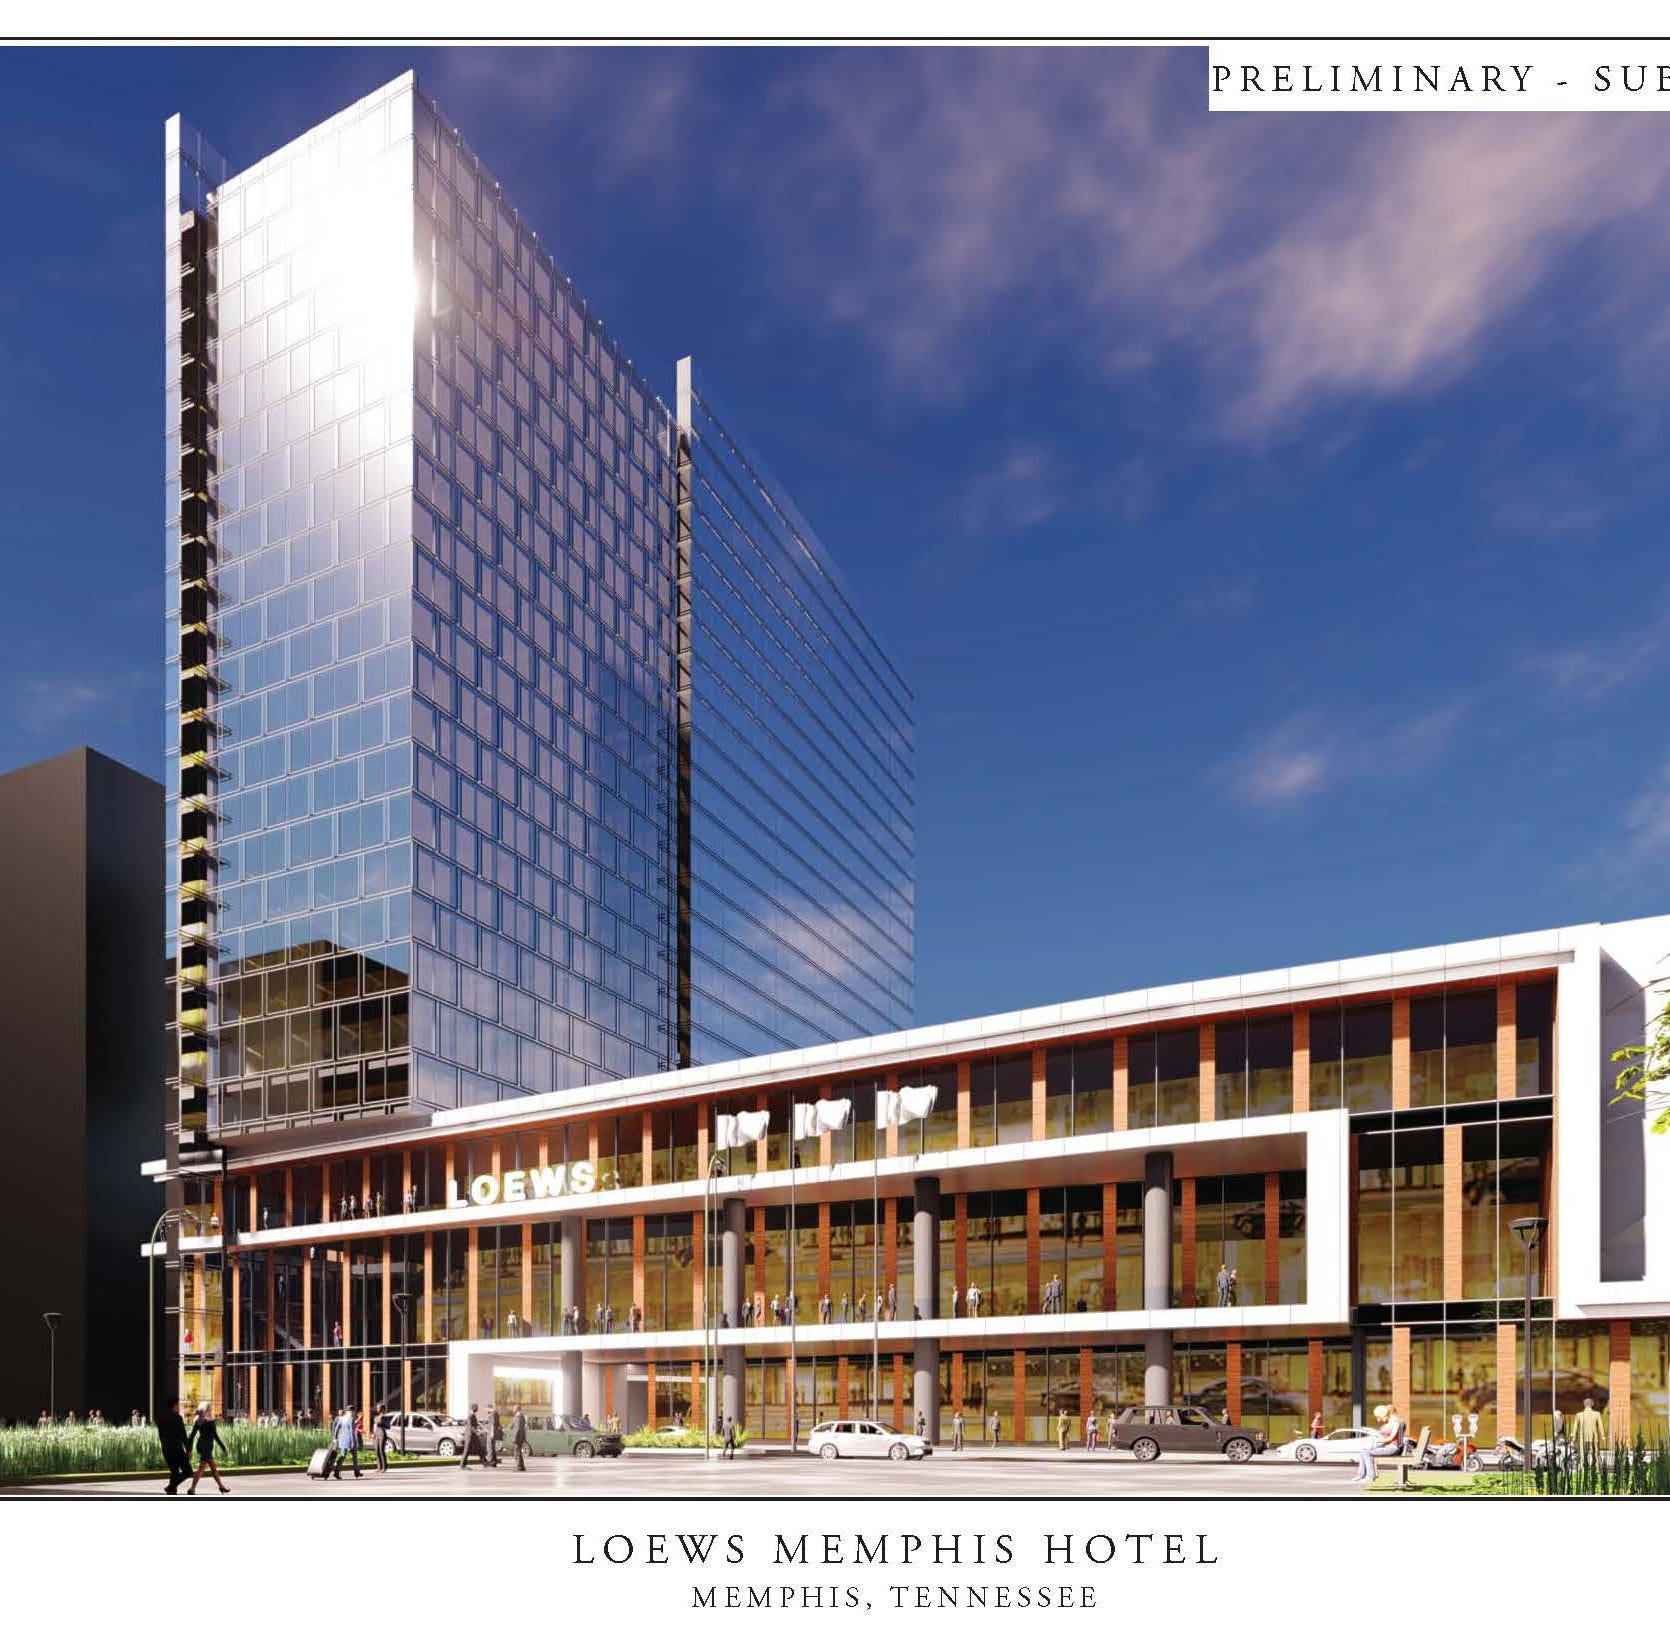 Owners of 100 N. Main building sue over proposed Loews convention center hotel